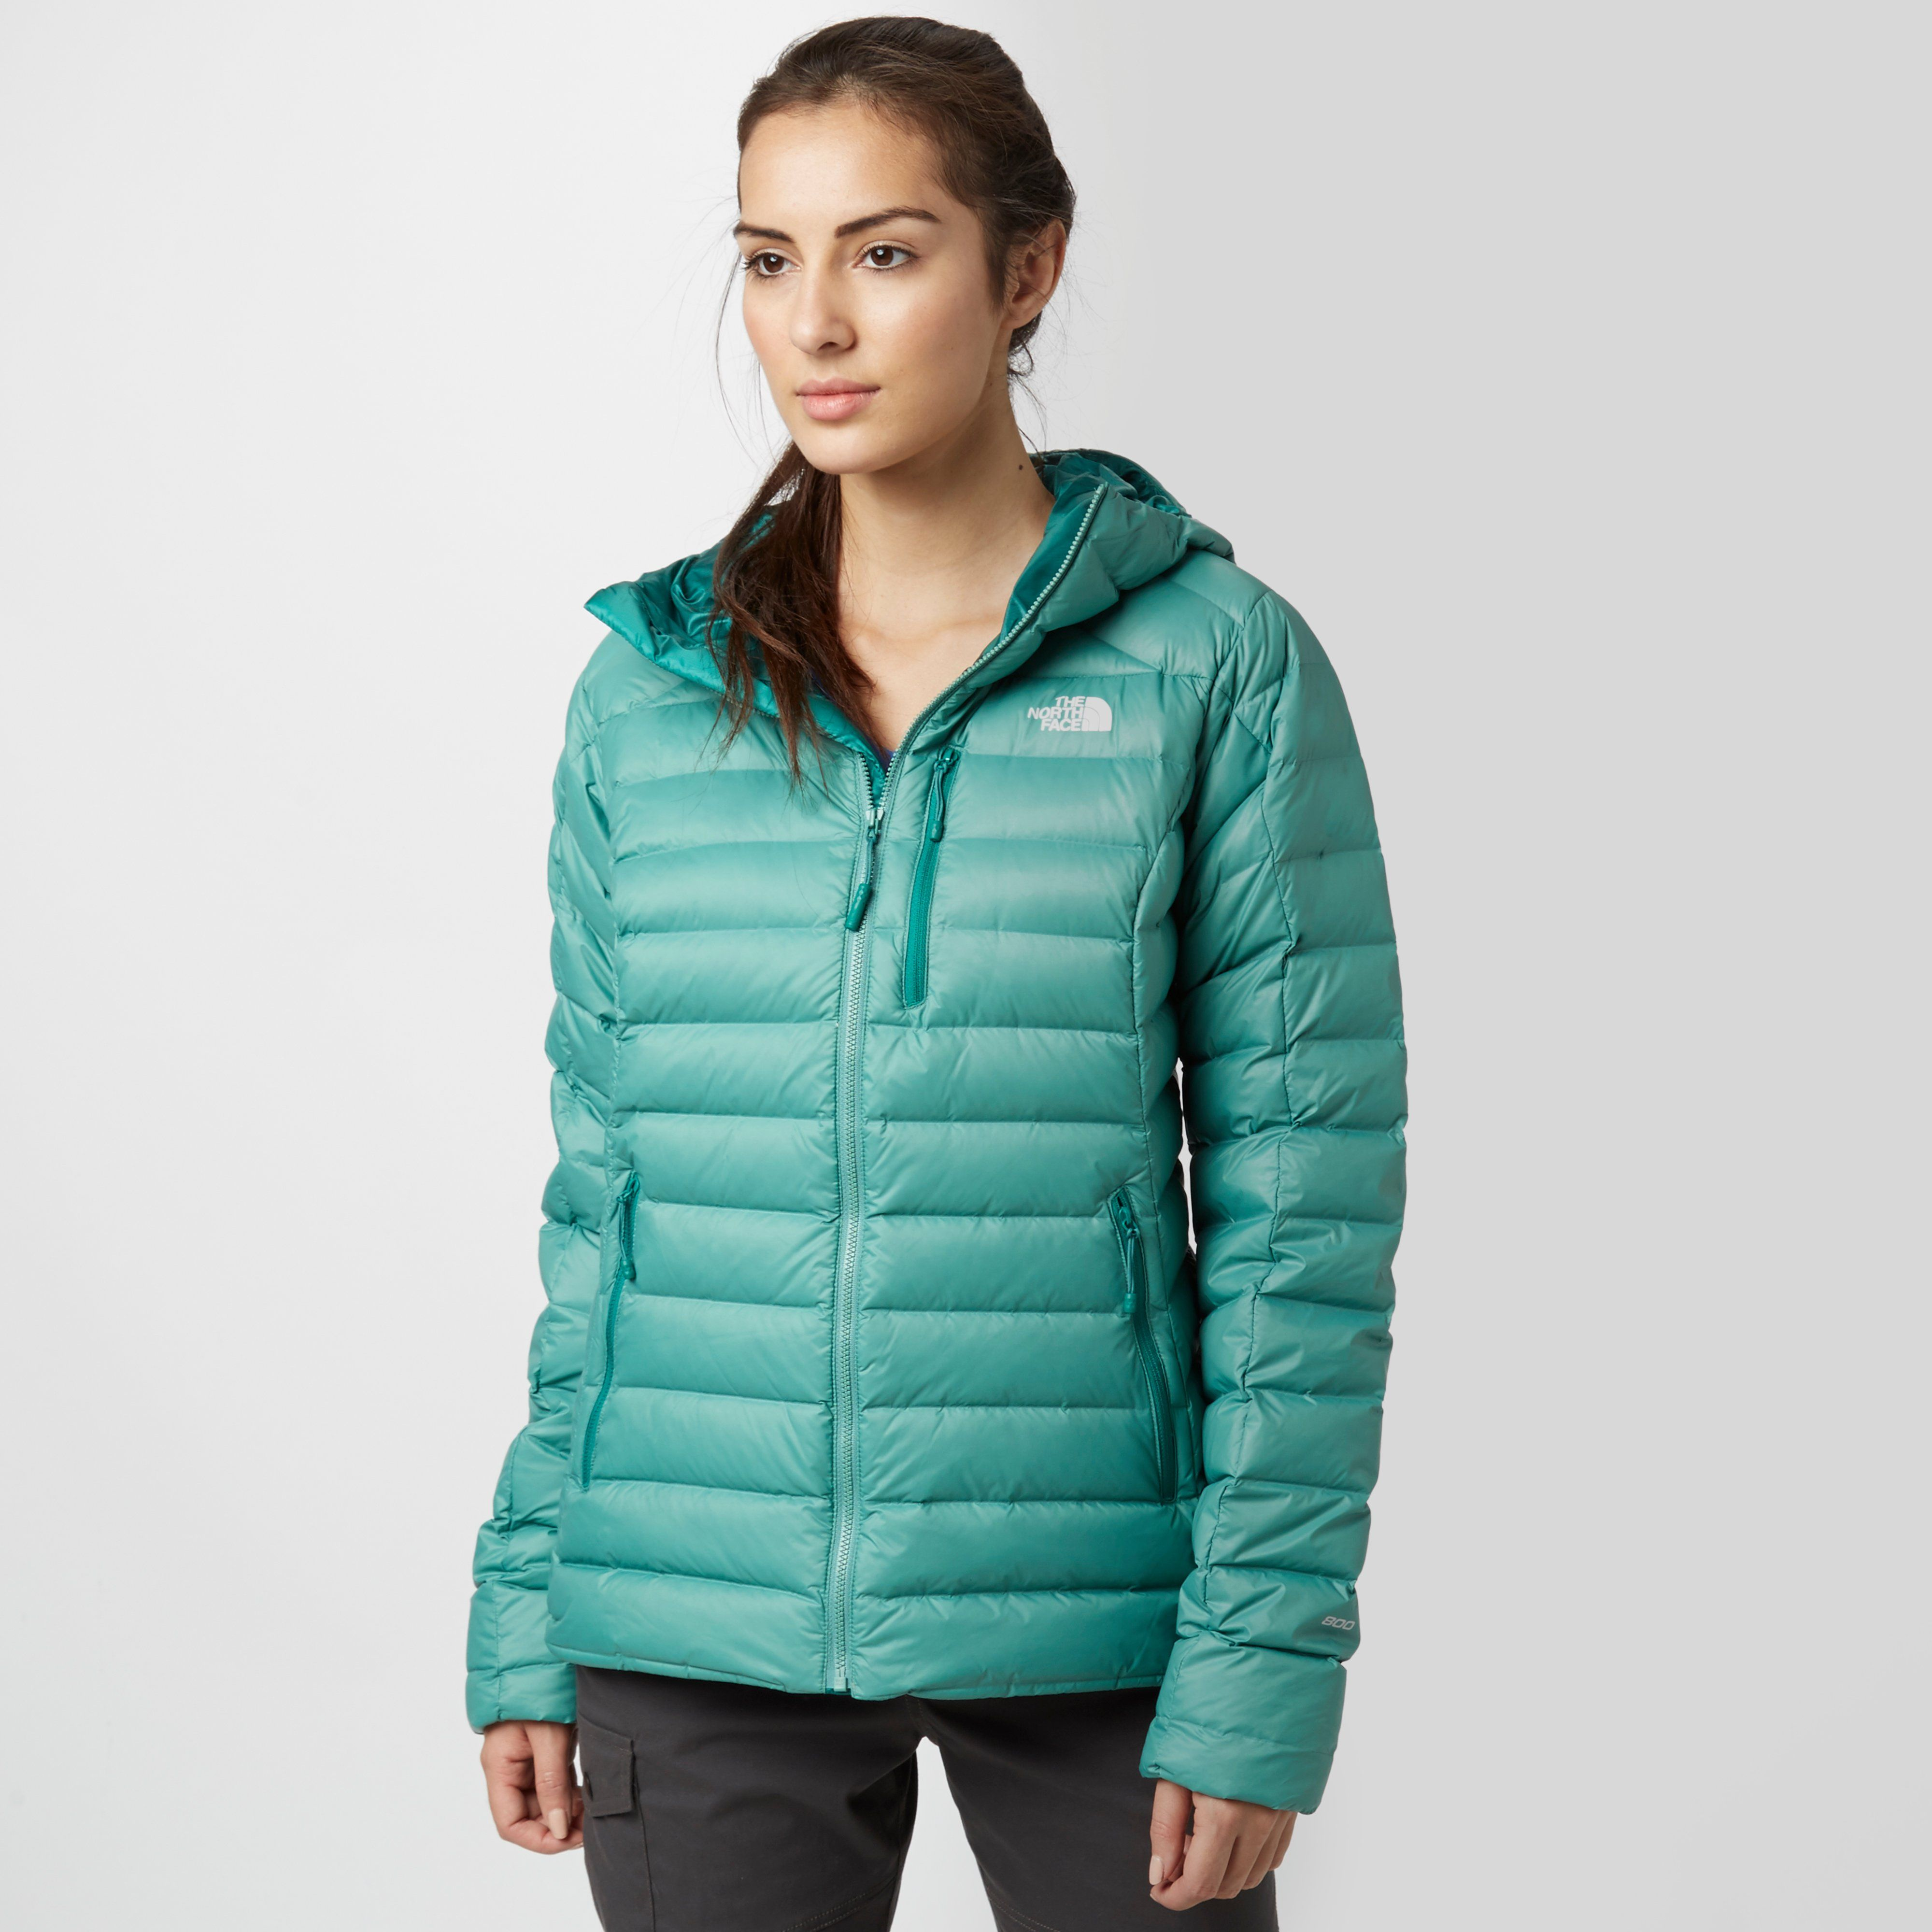 THE NORTH FACE Women's Morph Down Hooded Jacket